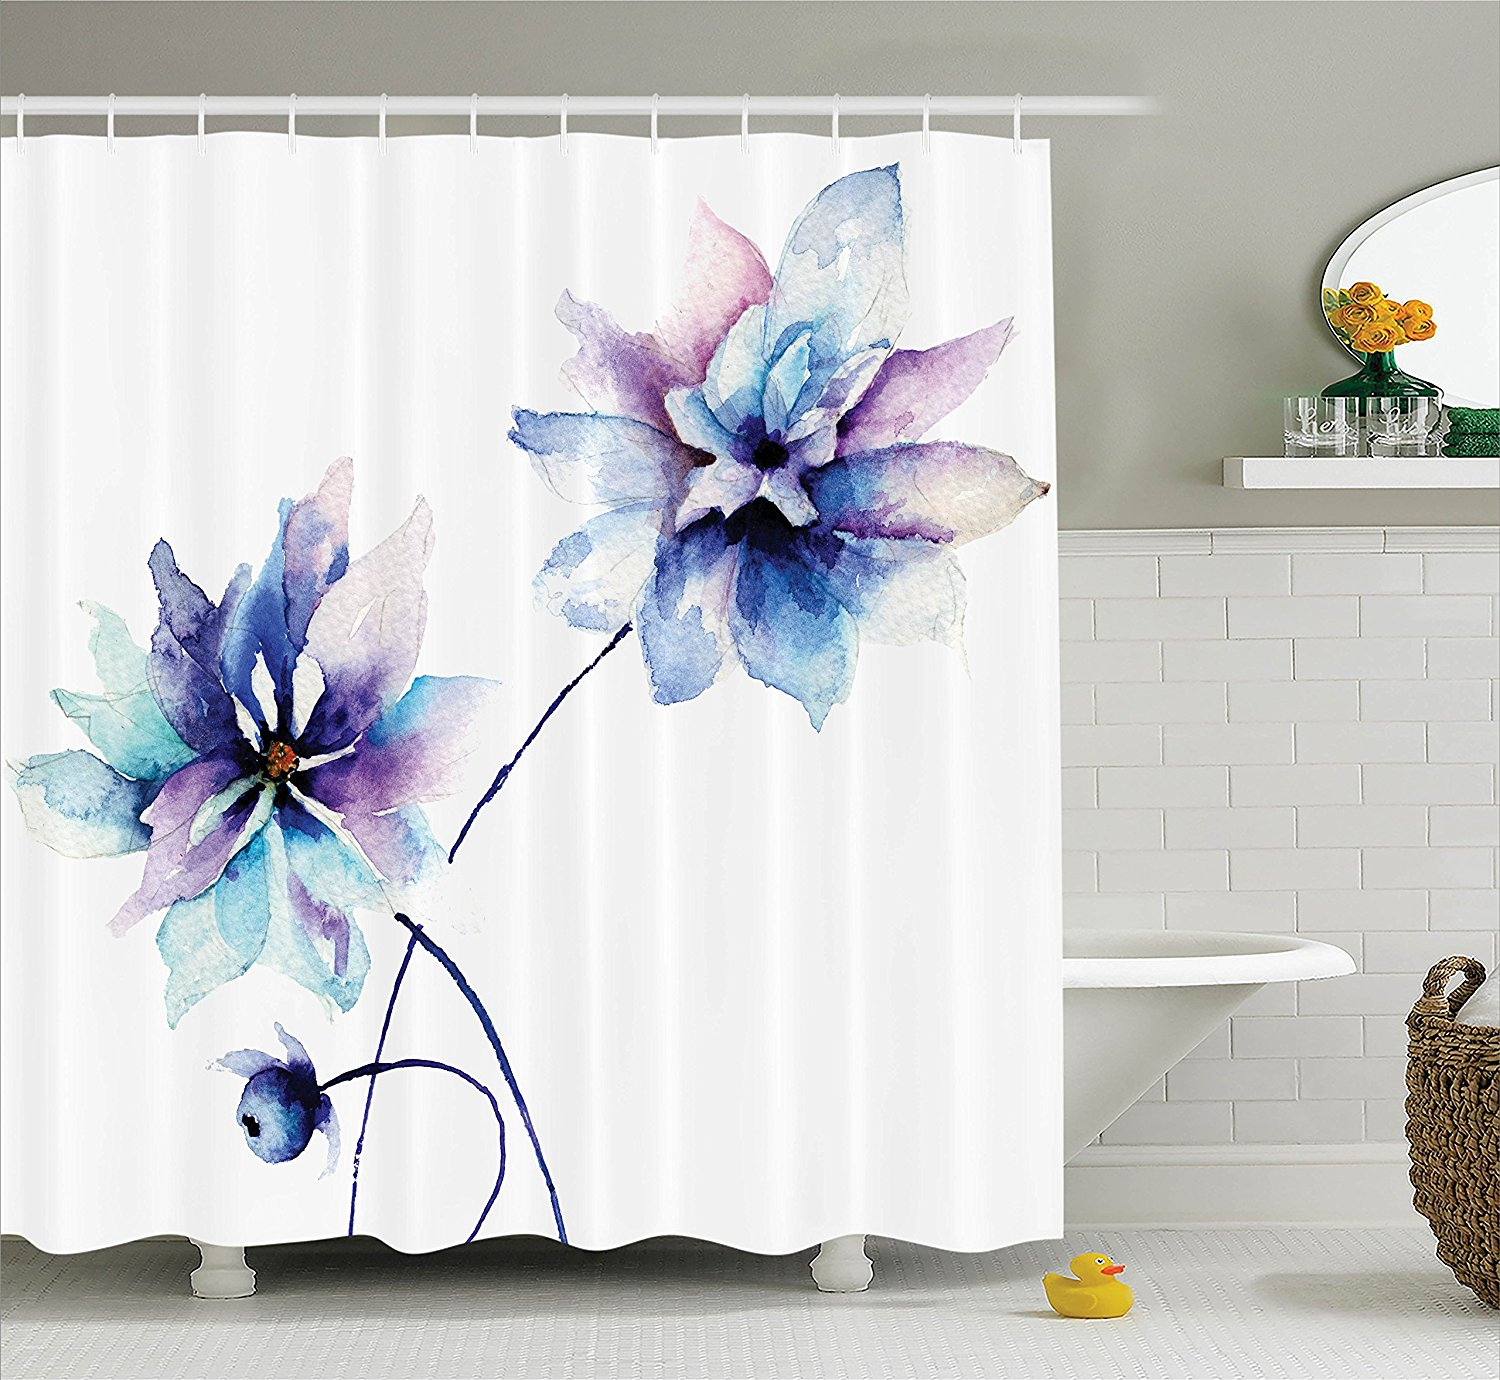 Watercolor Flower Decor Shower Curtain by Ambesonne, Elegant Flower Drawing with Soft Spring Colors Retro Style Floral Art, Fabric Bathroom Set with Hooks, 69W X 70L Inches Long, White Purple and Blue